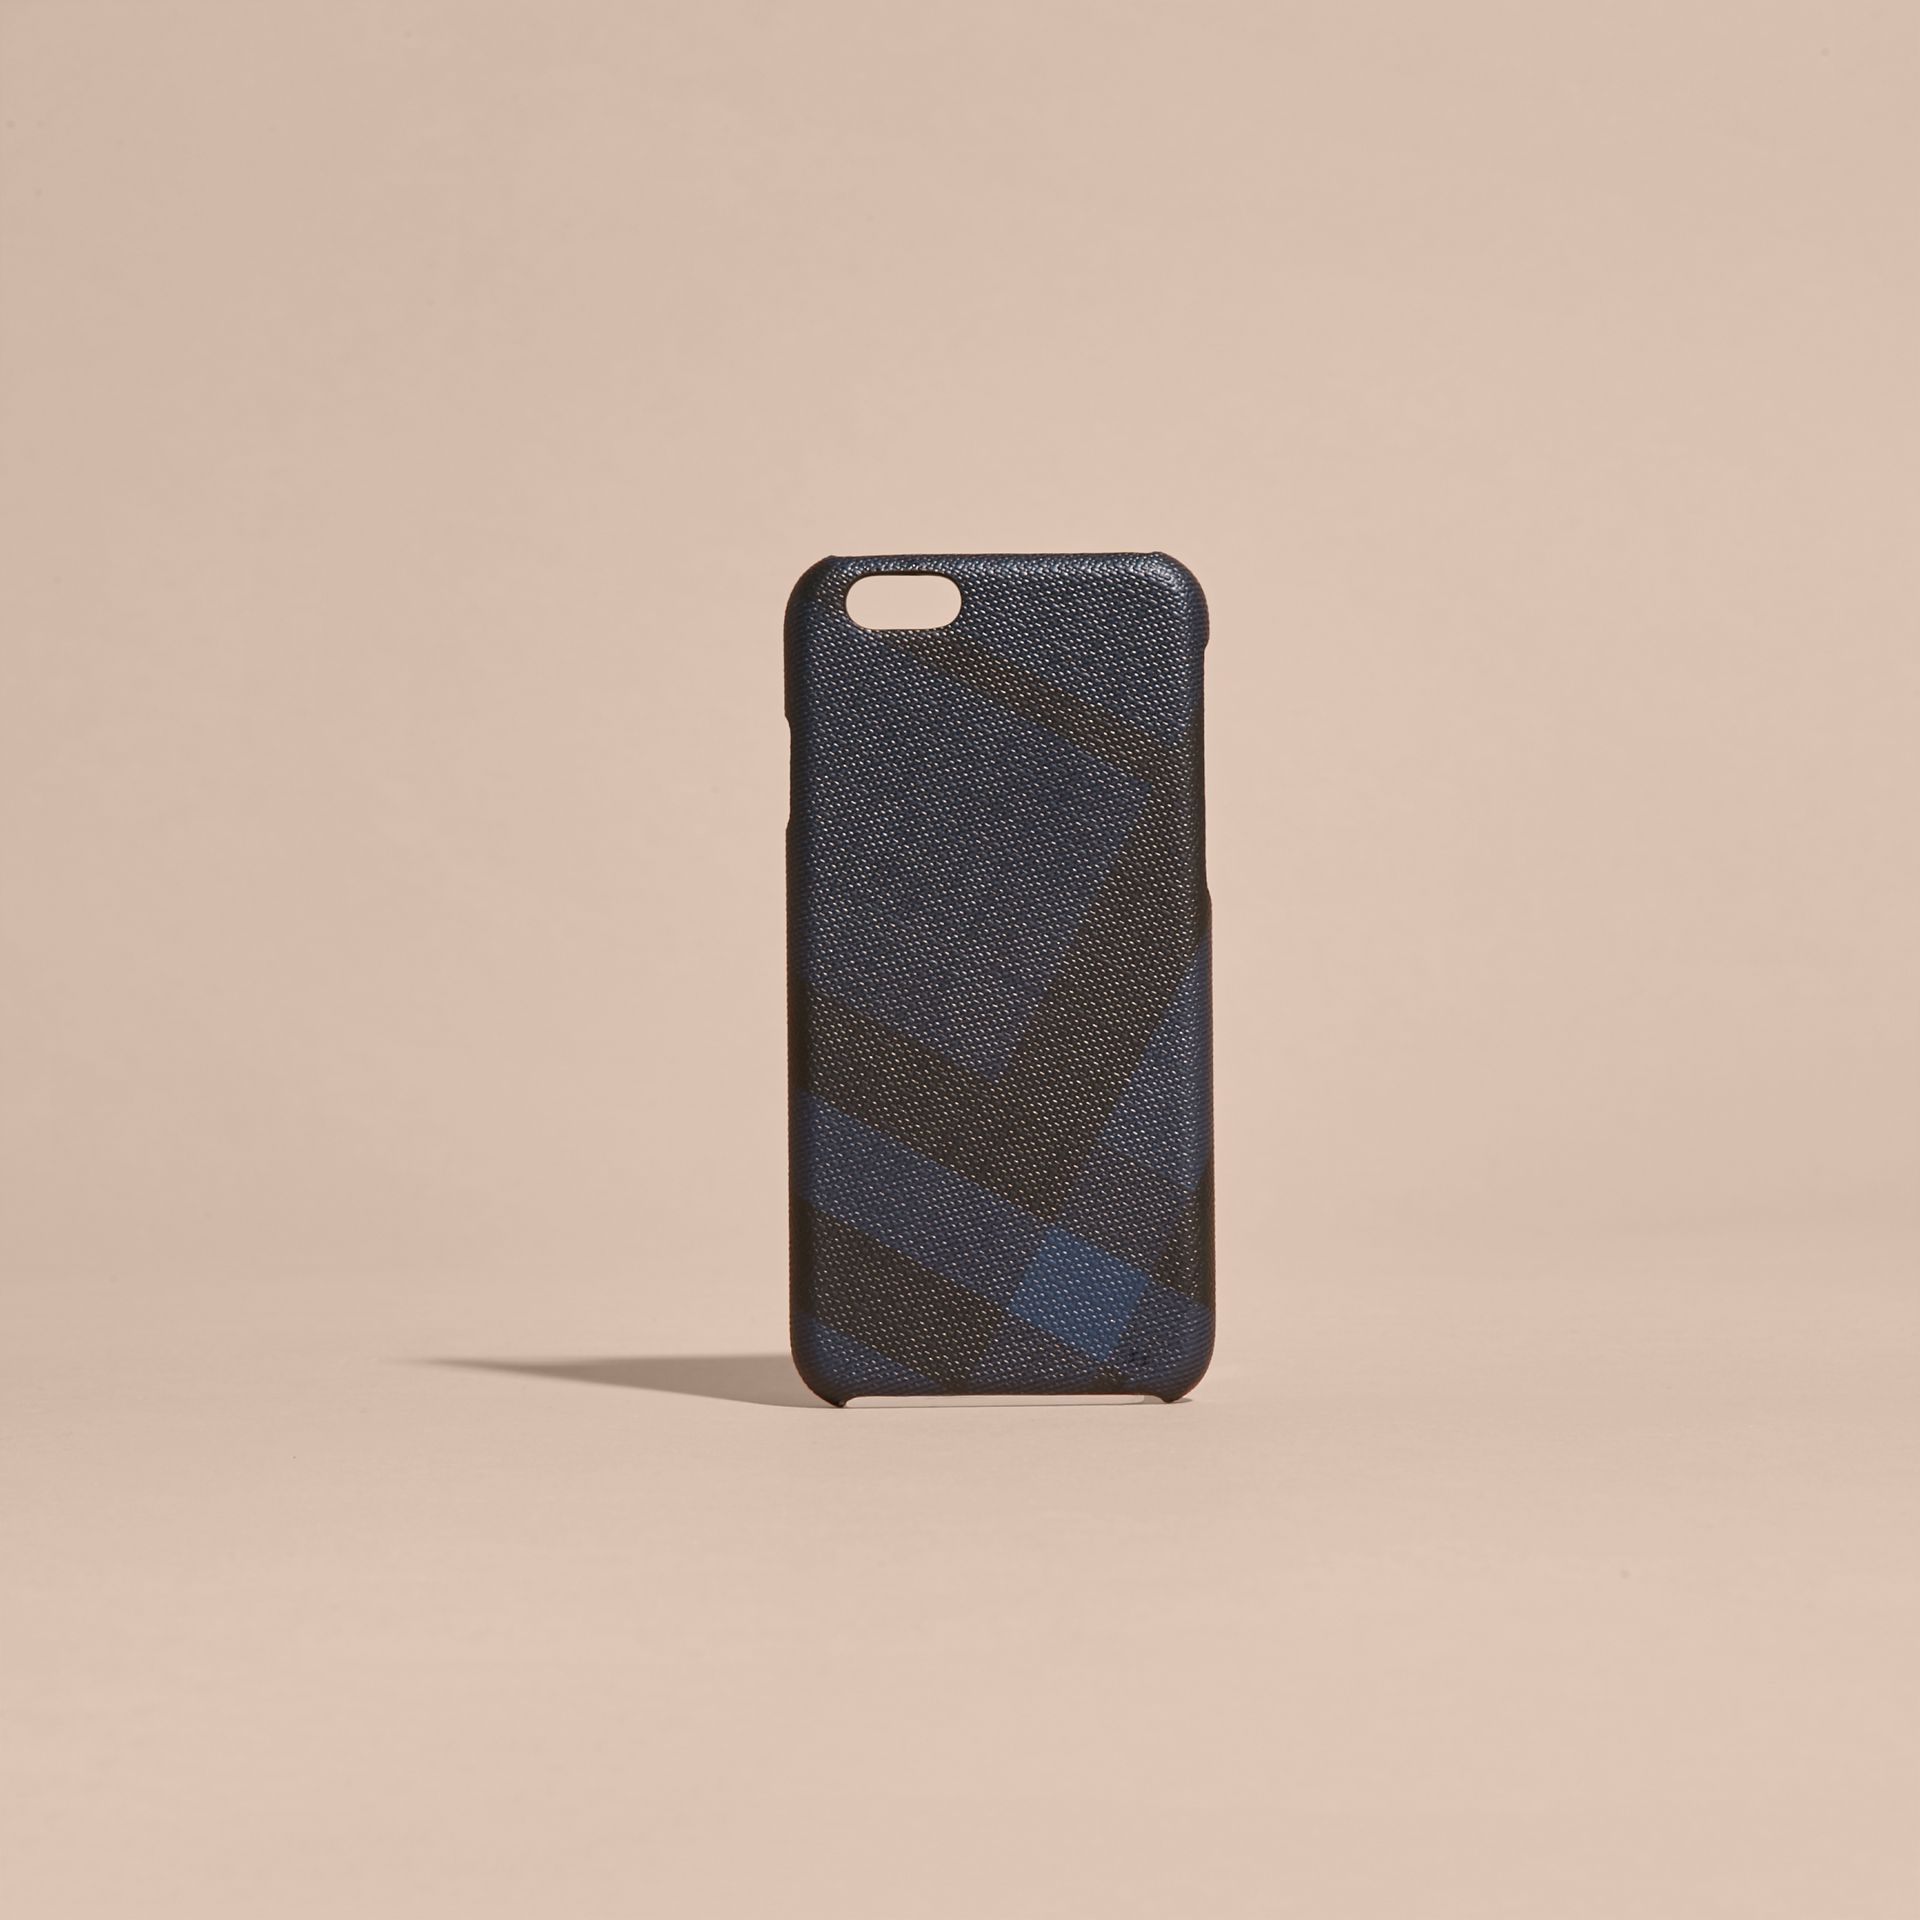 Custodia per iPhone 7 con motivo London check (Navy/nero) | Burberry - immagine della galleria 5